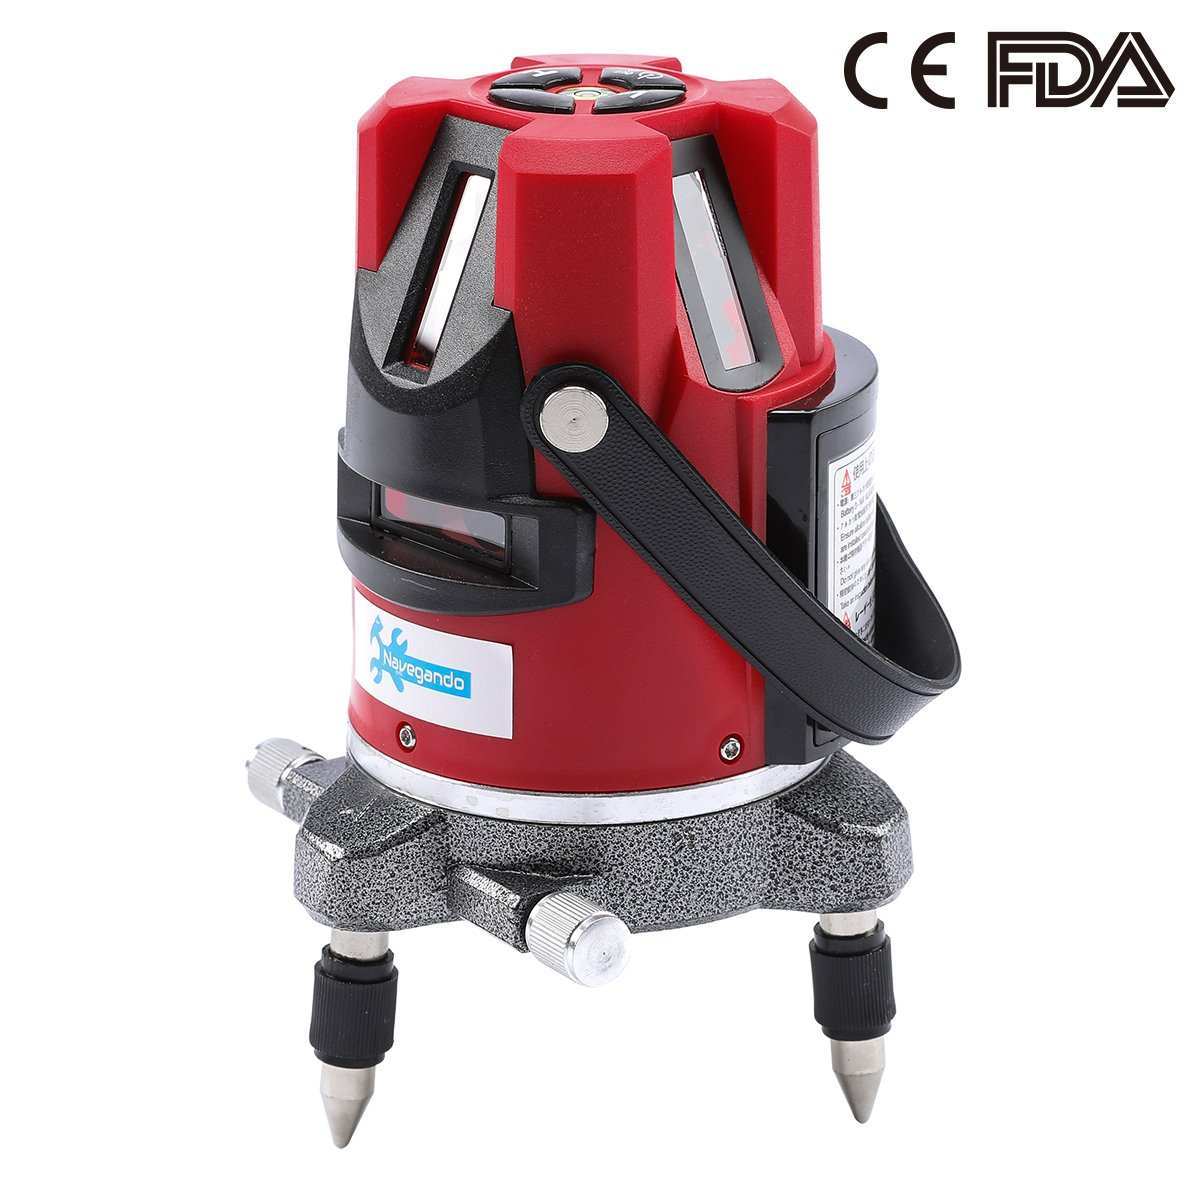 Navegando 5 Line 6 Point 360° Rotary Multipurpose Self-Leveling Output 4 Vertical 1 Horizontal Red Laser Lines Automatically Laser Marking Device Blow Box Kit